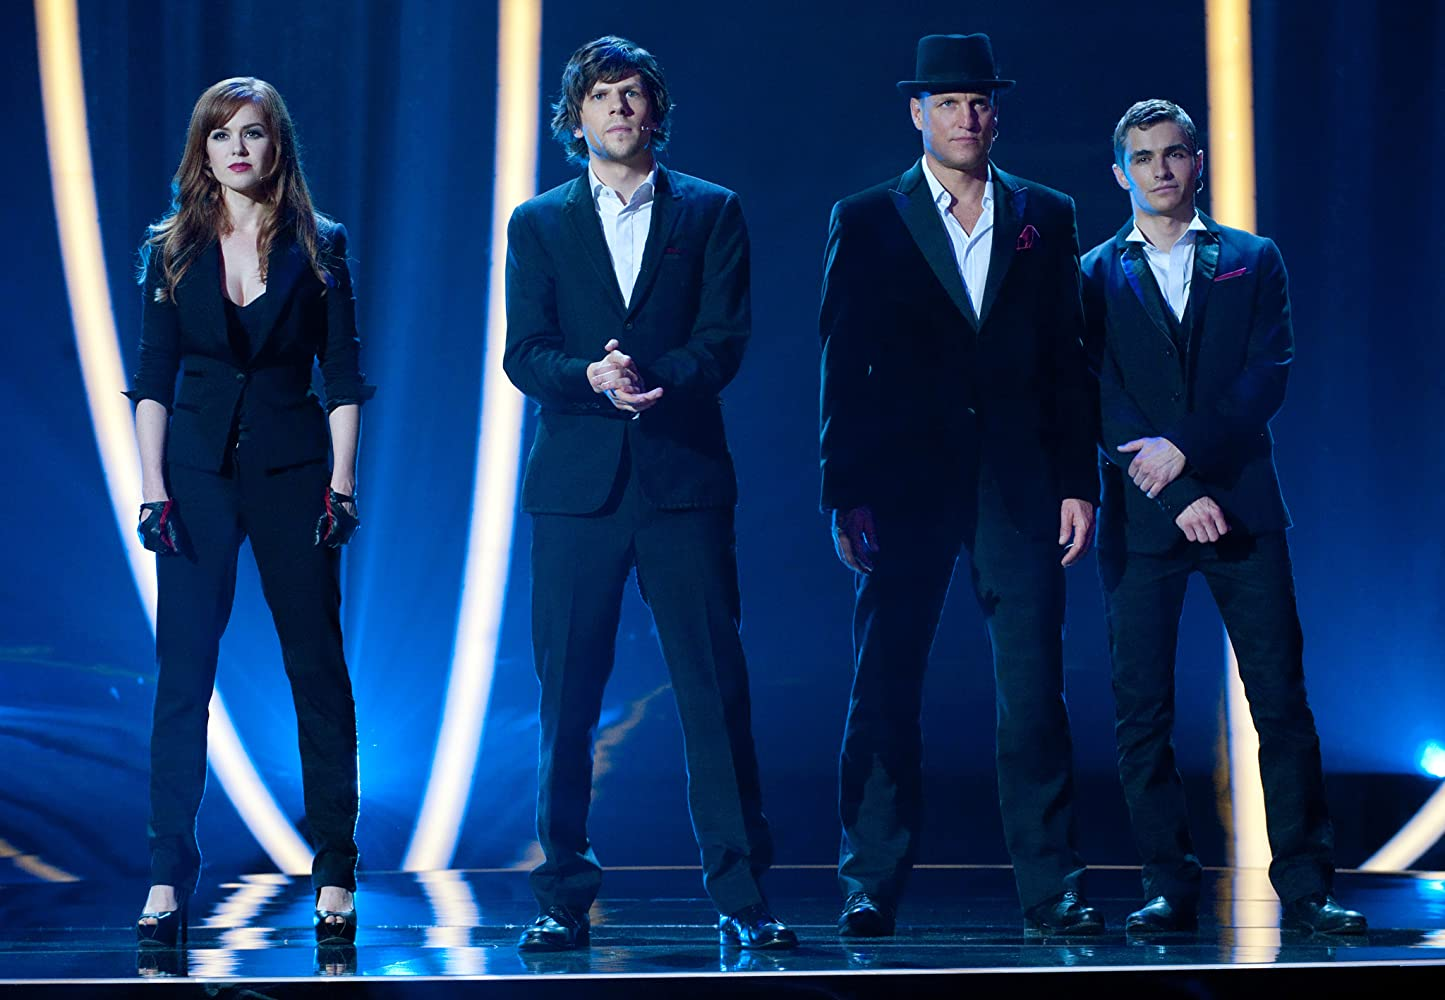 Woody Harrelson, Jesse Eisenberg, Isla Fisher, and Dave Franco in Now You See Me (2013)